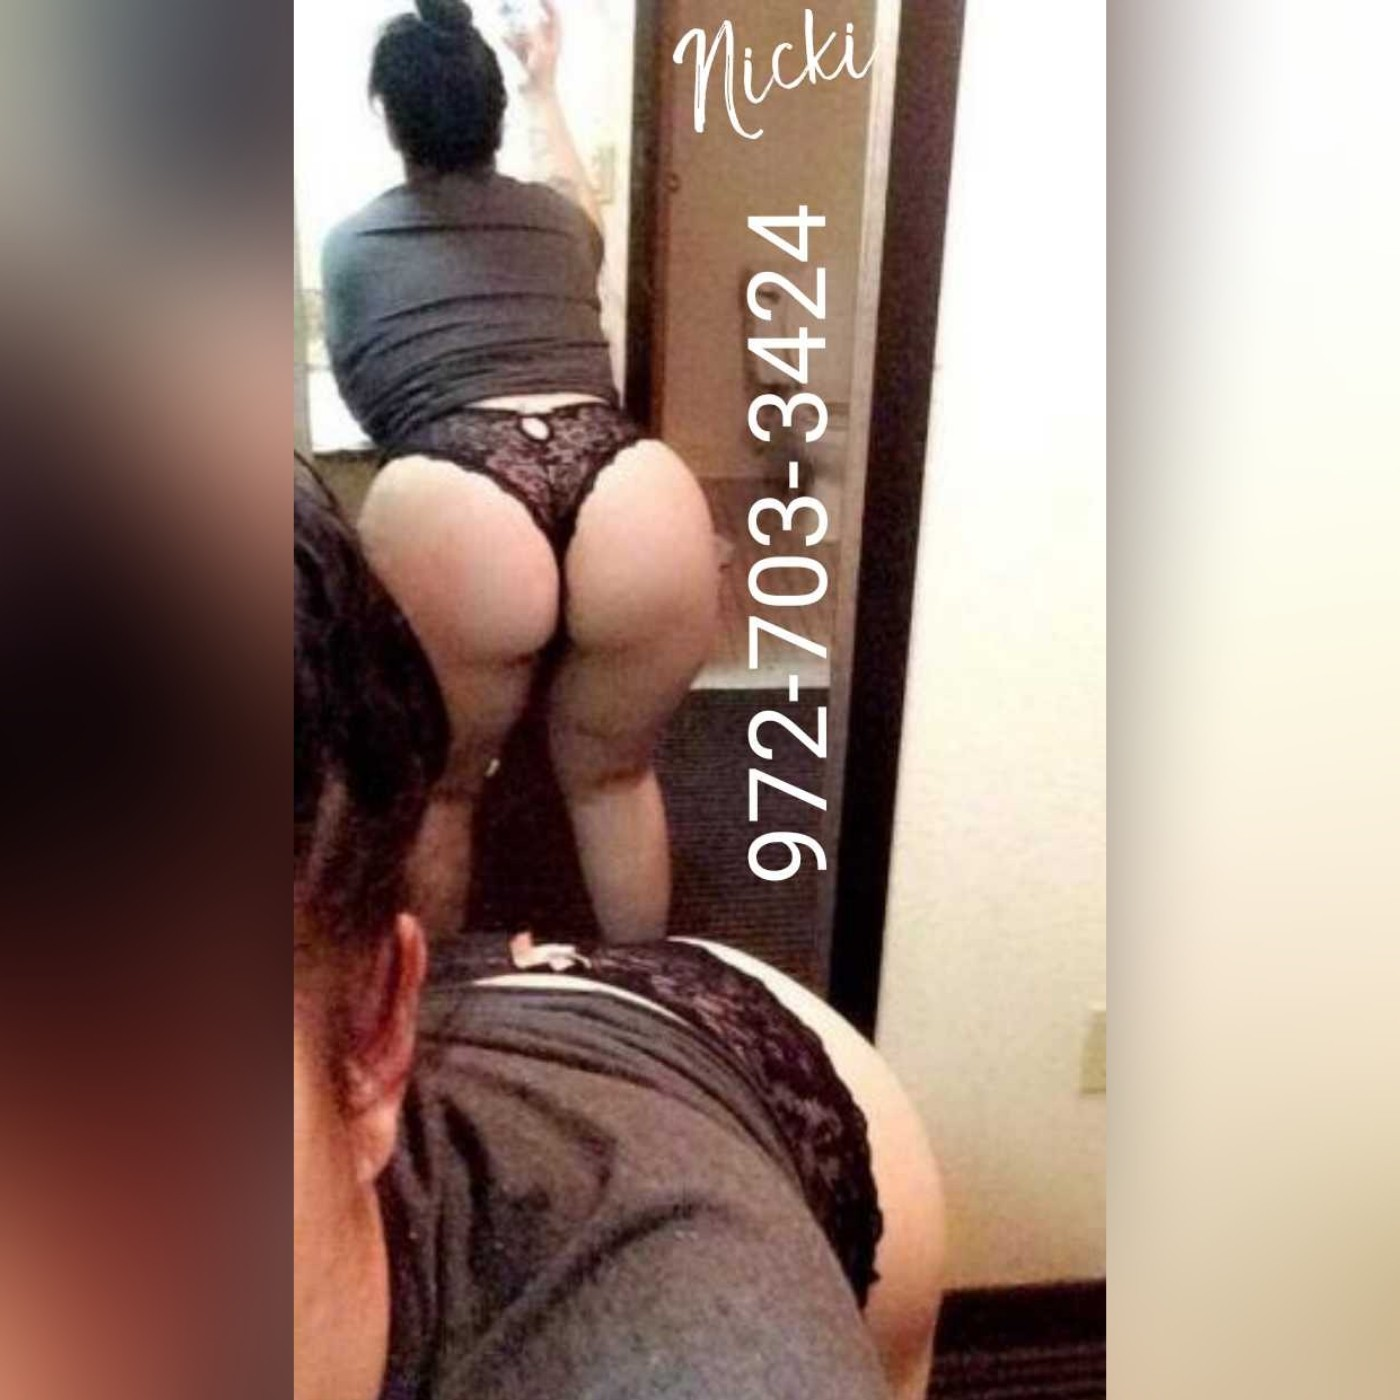 💦SEXY💦INDIAN😯 👄👅✨😍💯%BEST💦SERVICE 👄IN Dfw 💖 100% ACCURATE Pics